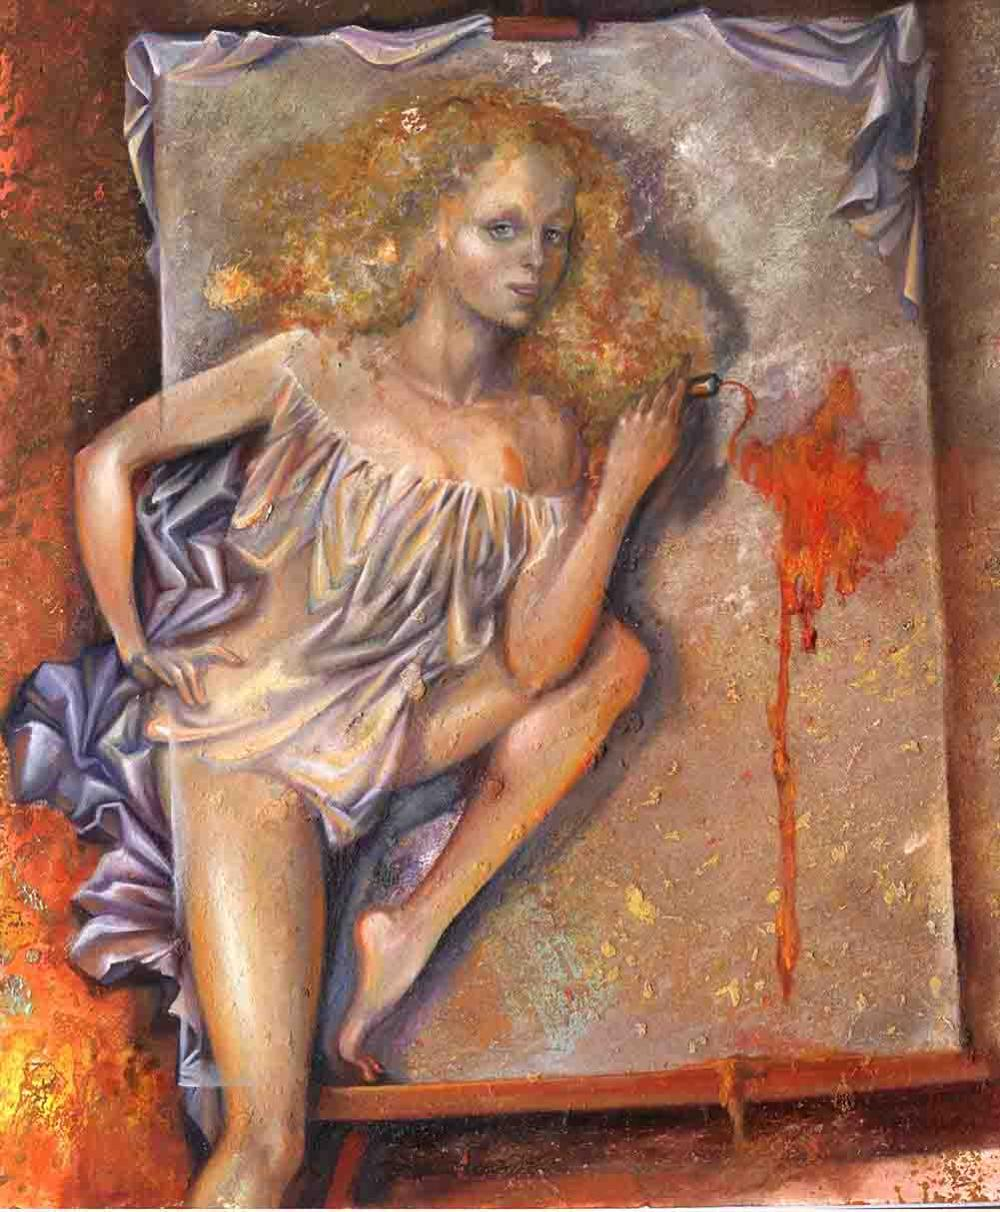 Lot 3405: Muse. Mixed media original on canvas by Arina